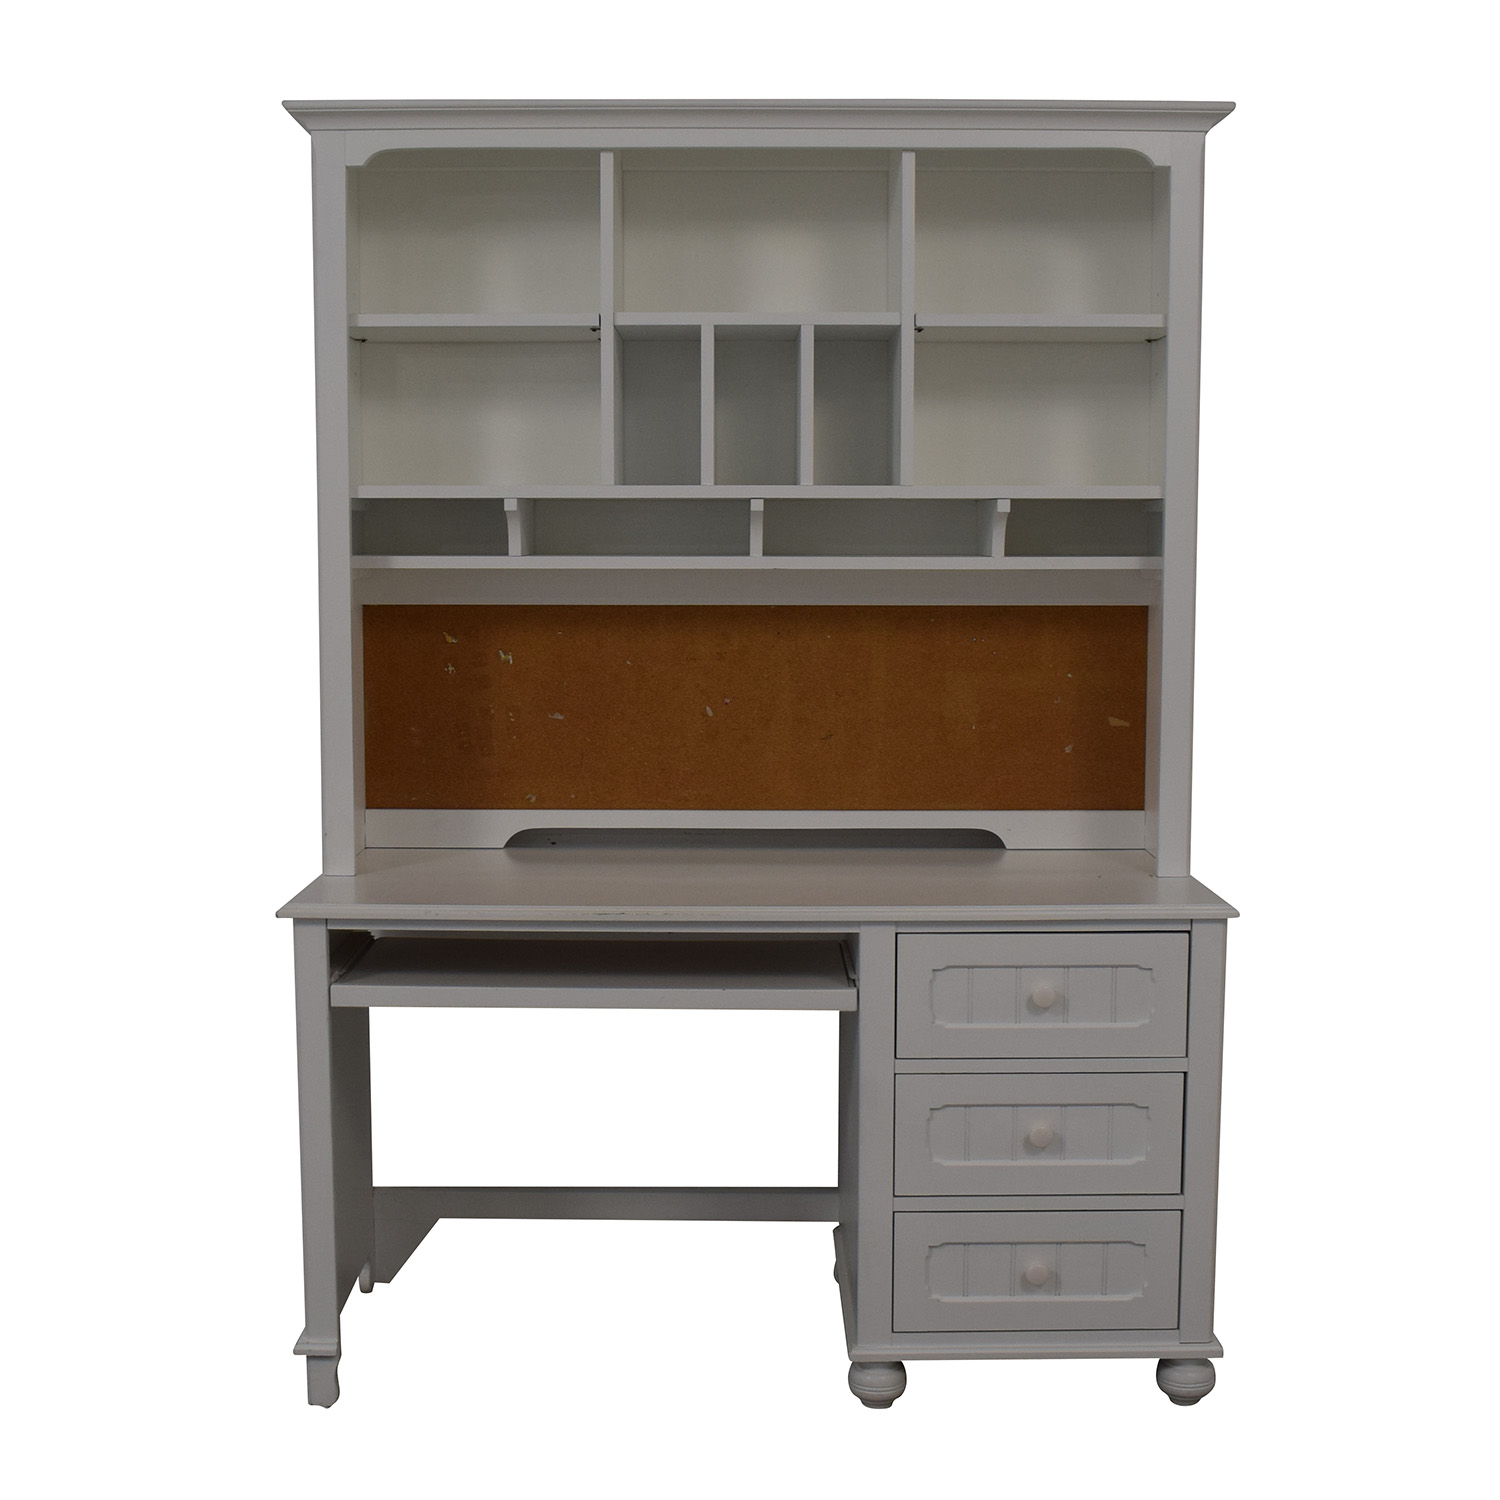 Lea Furniture Lea Furniture Modern Computer Desk and Hutch White